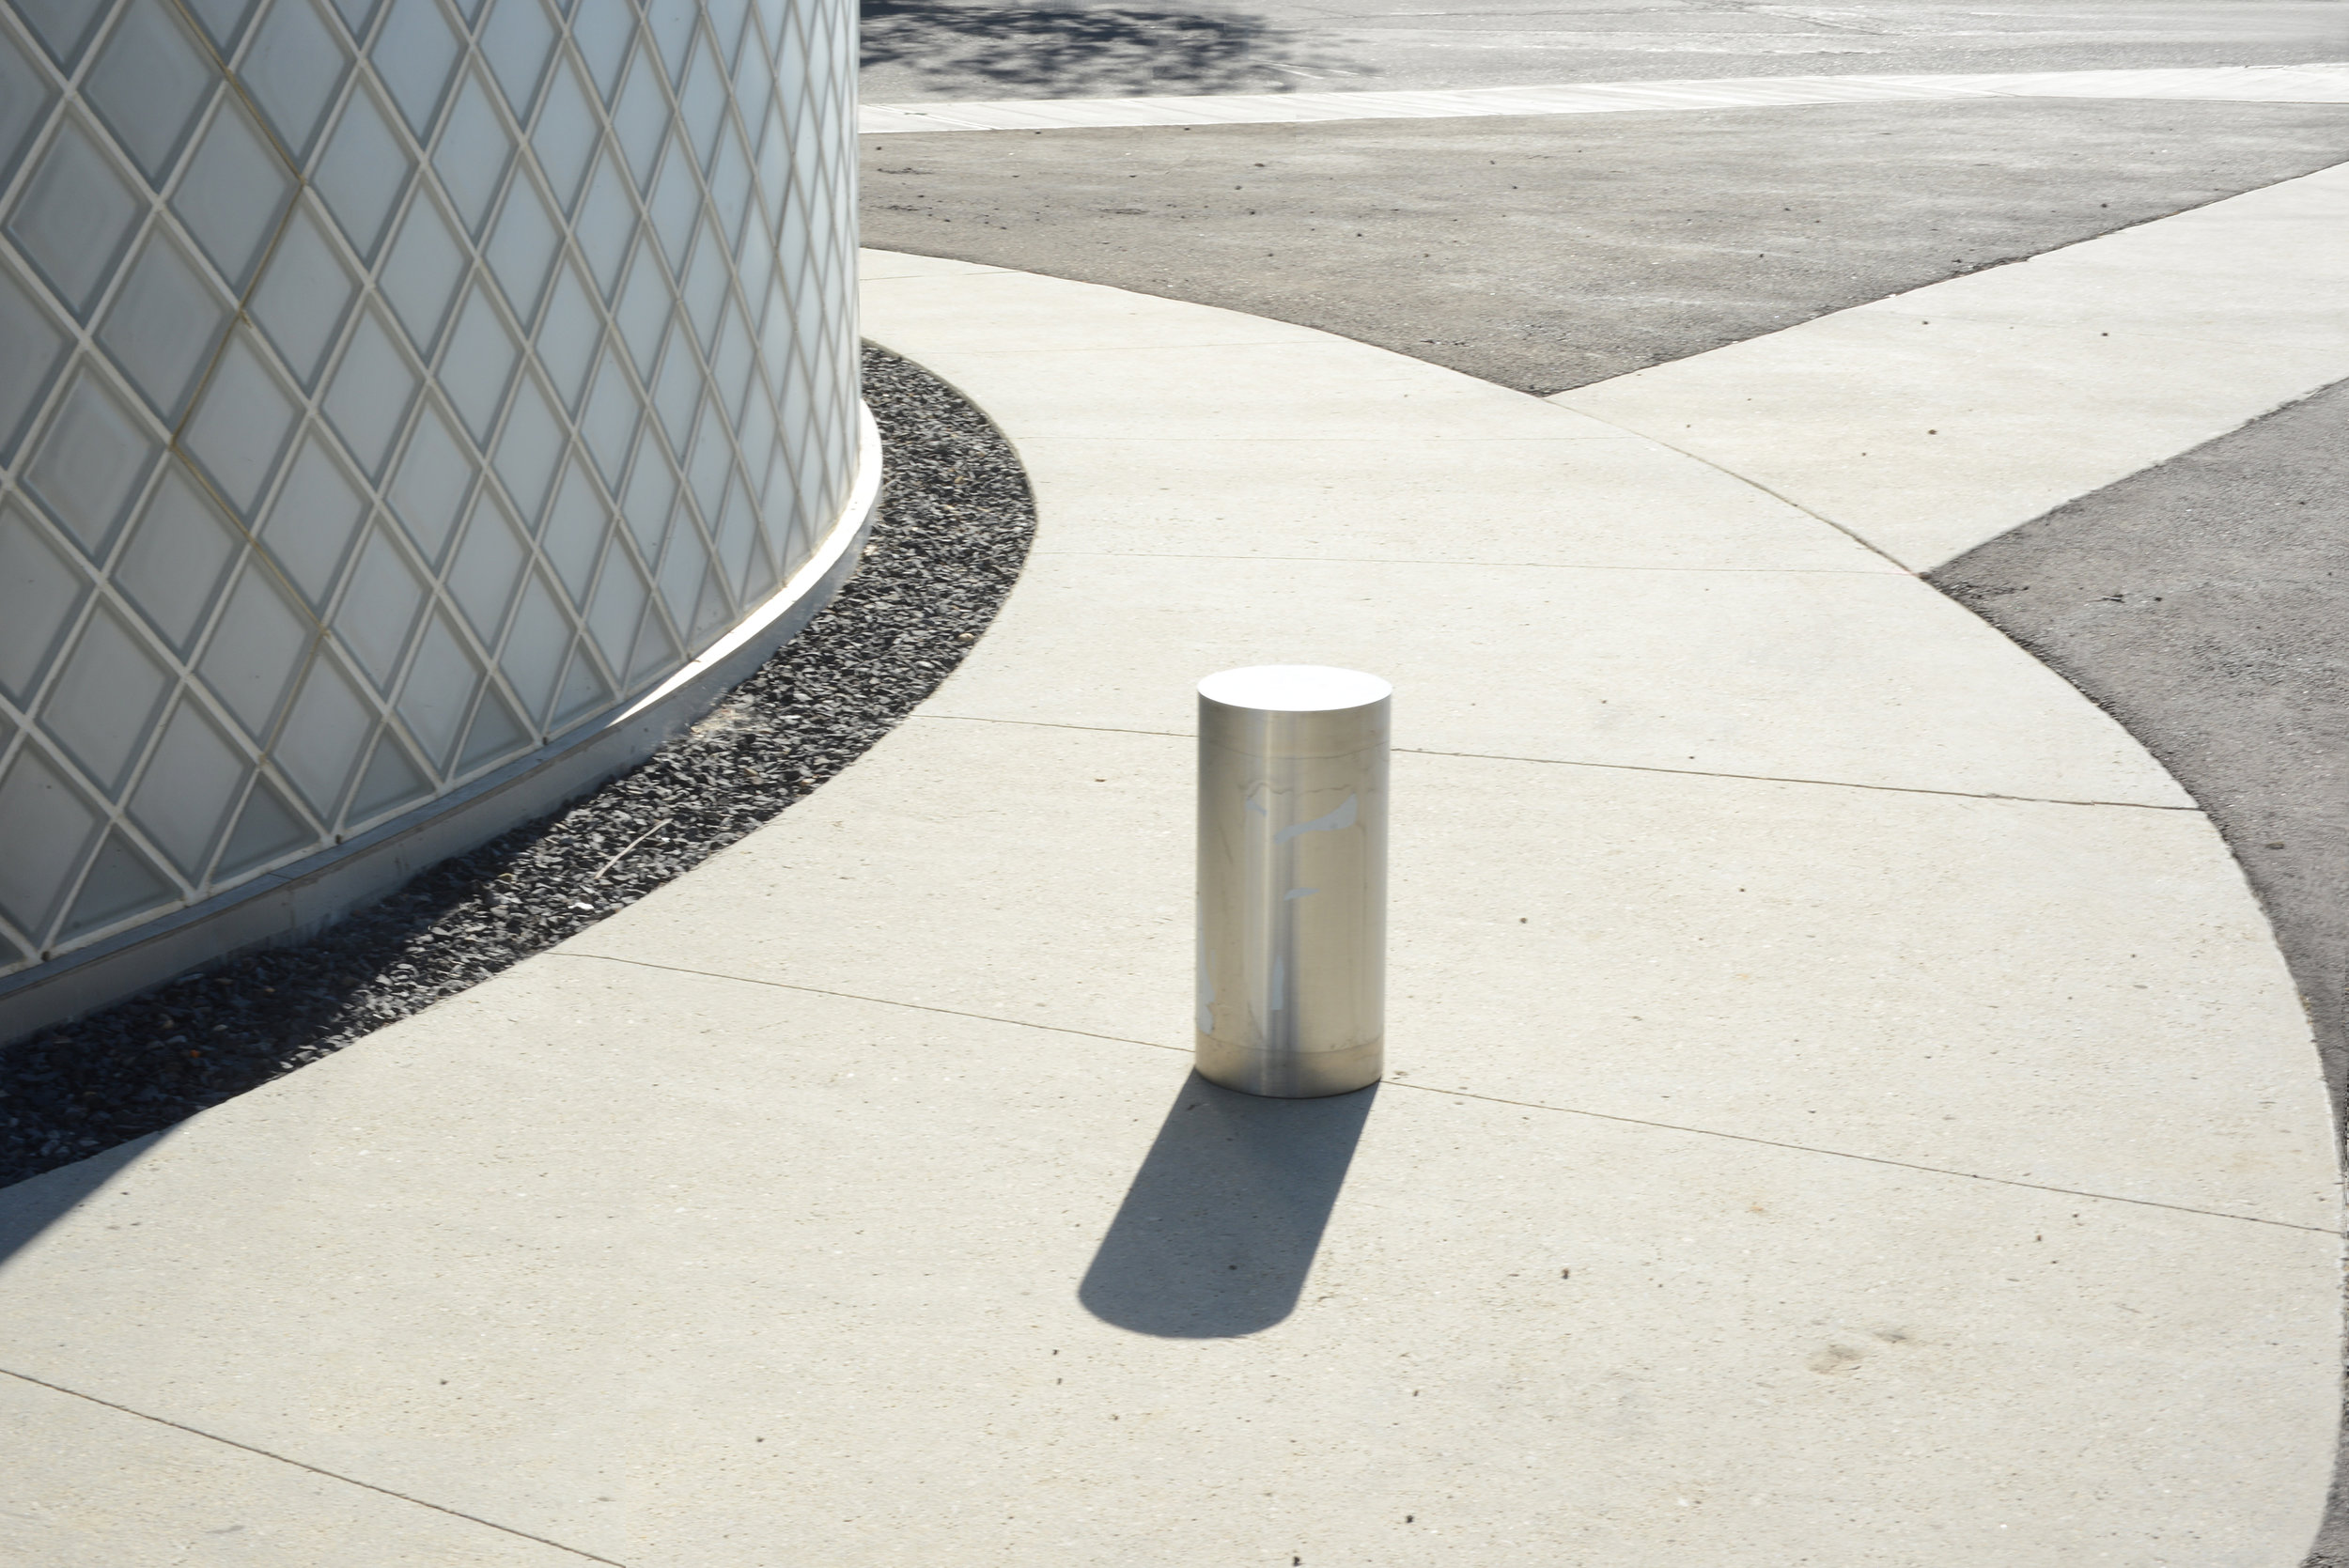 Copy of Copy of RTC -  bollard and facade close up, sidewalk  and path view